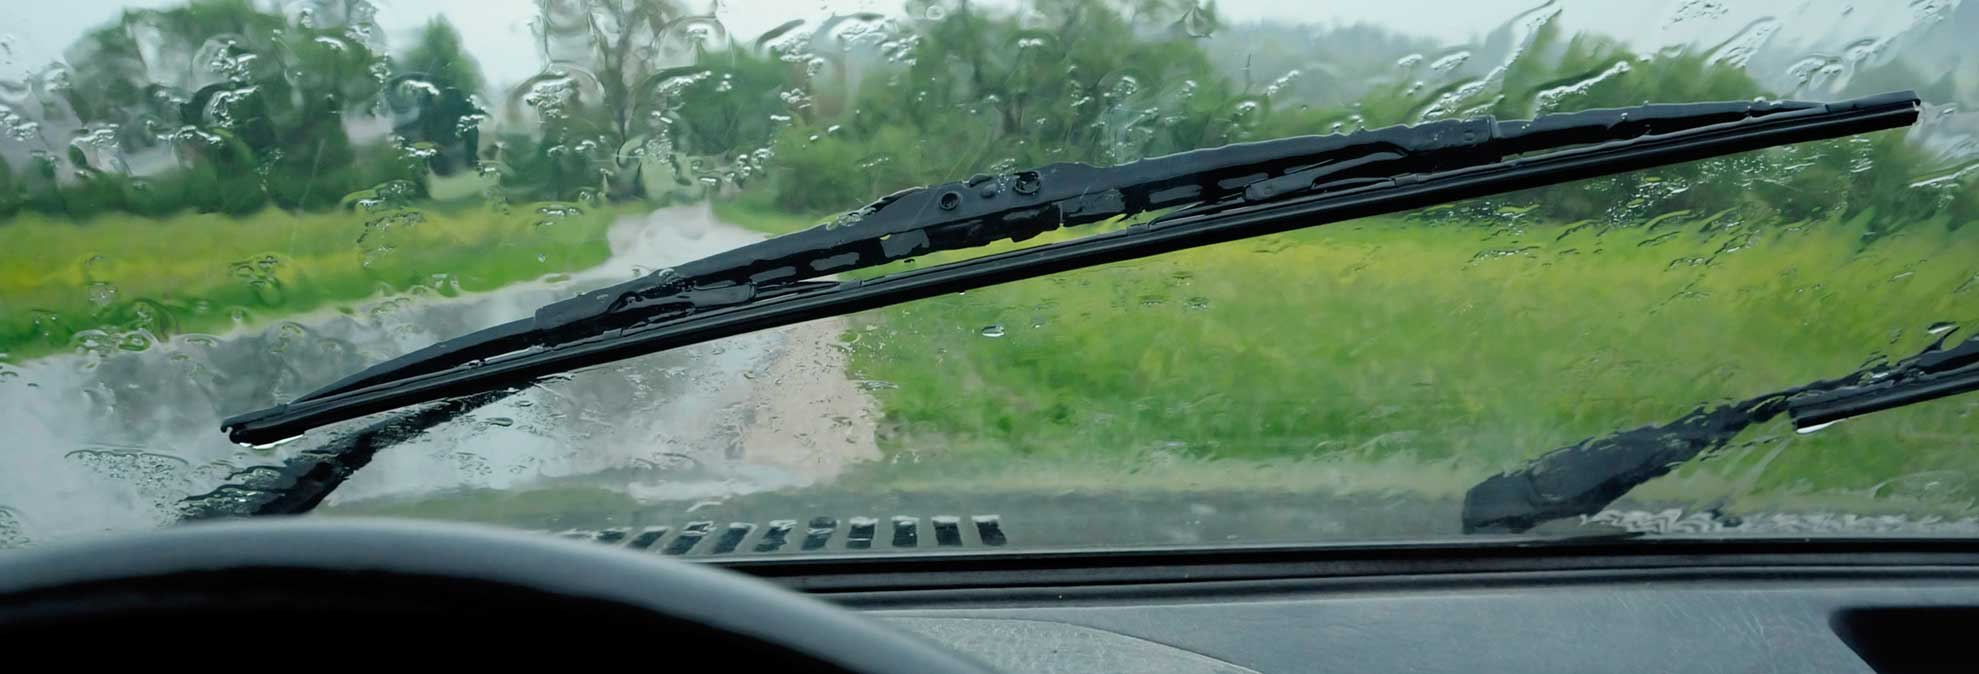 Best Wiper Blade Buying Guide - Consumer Reports